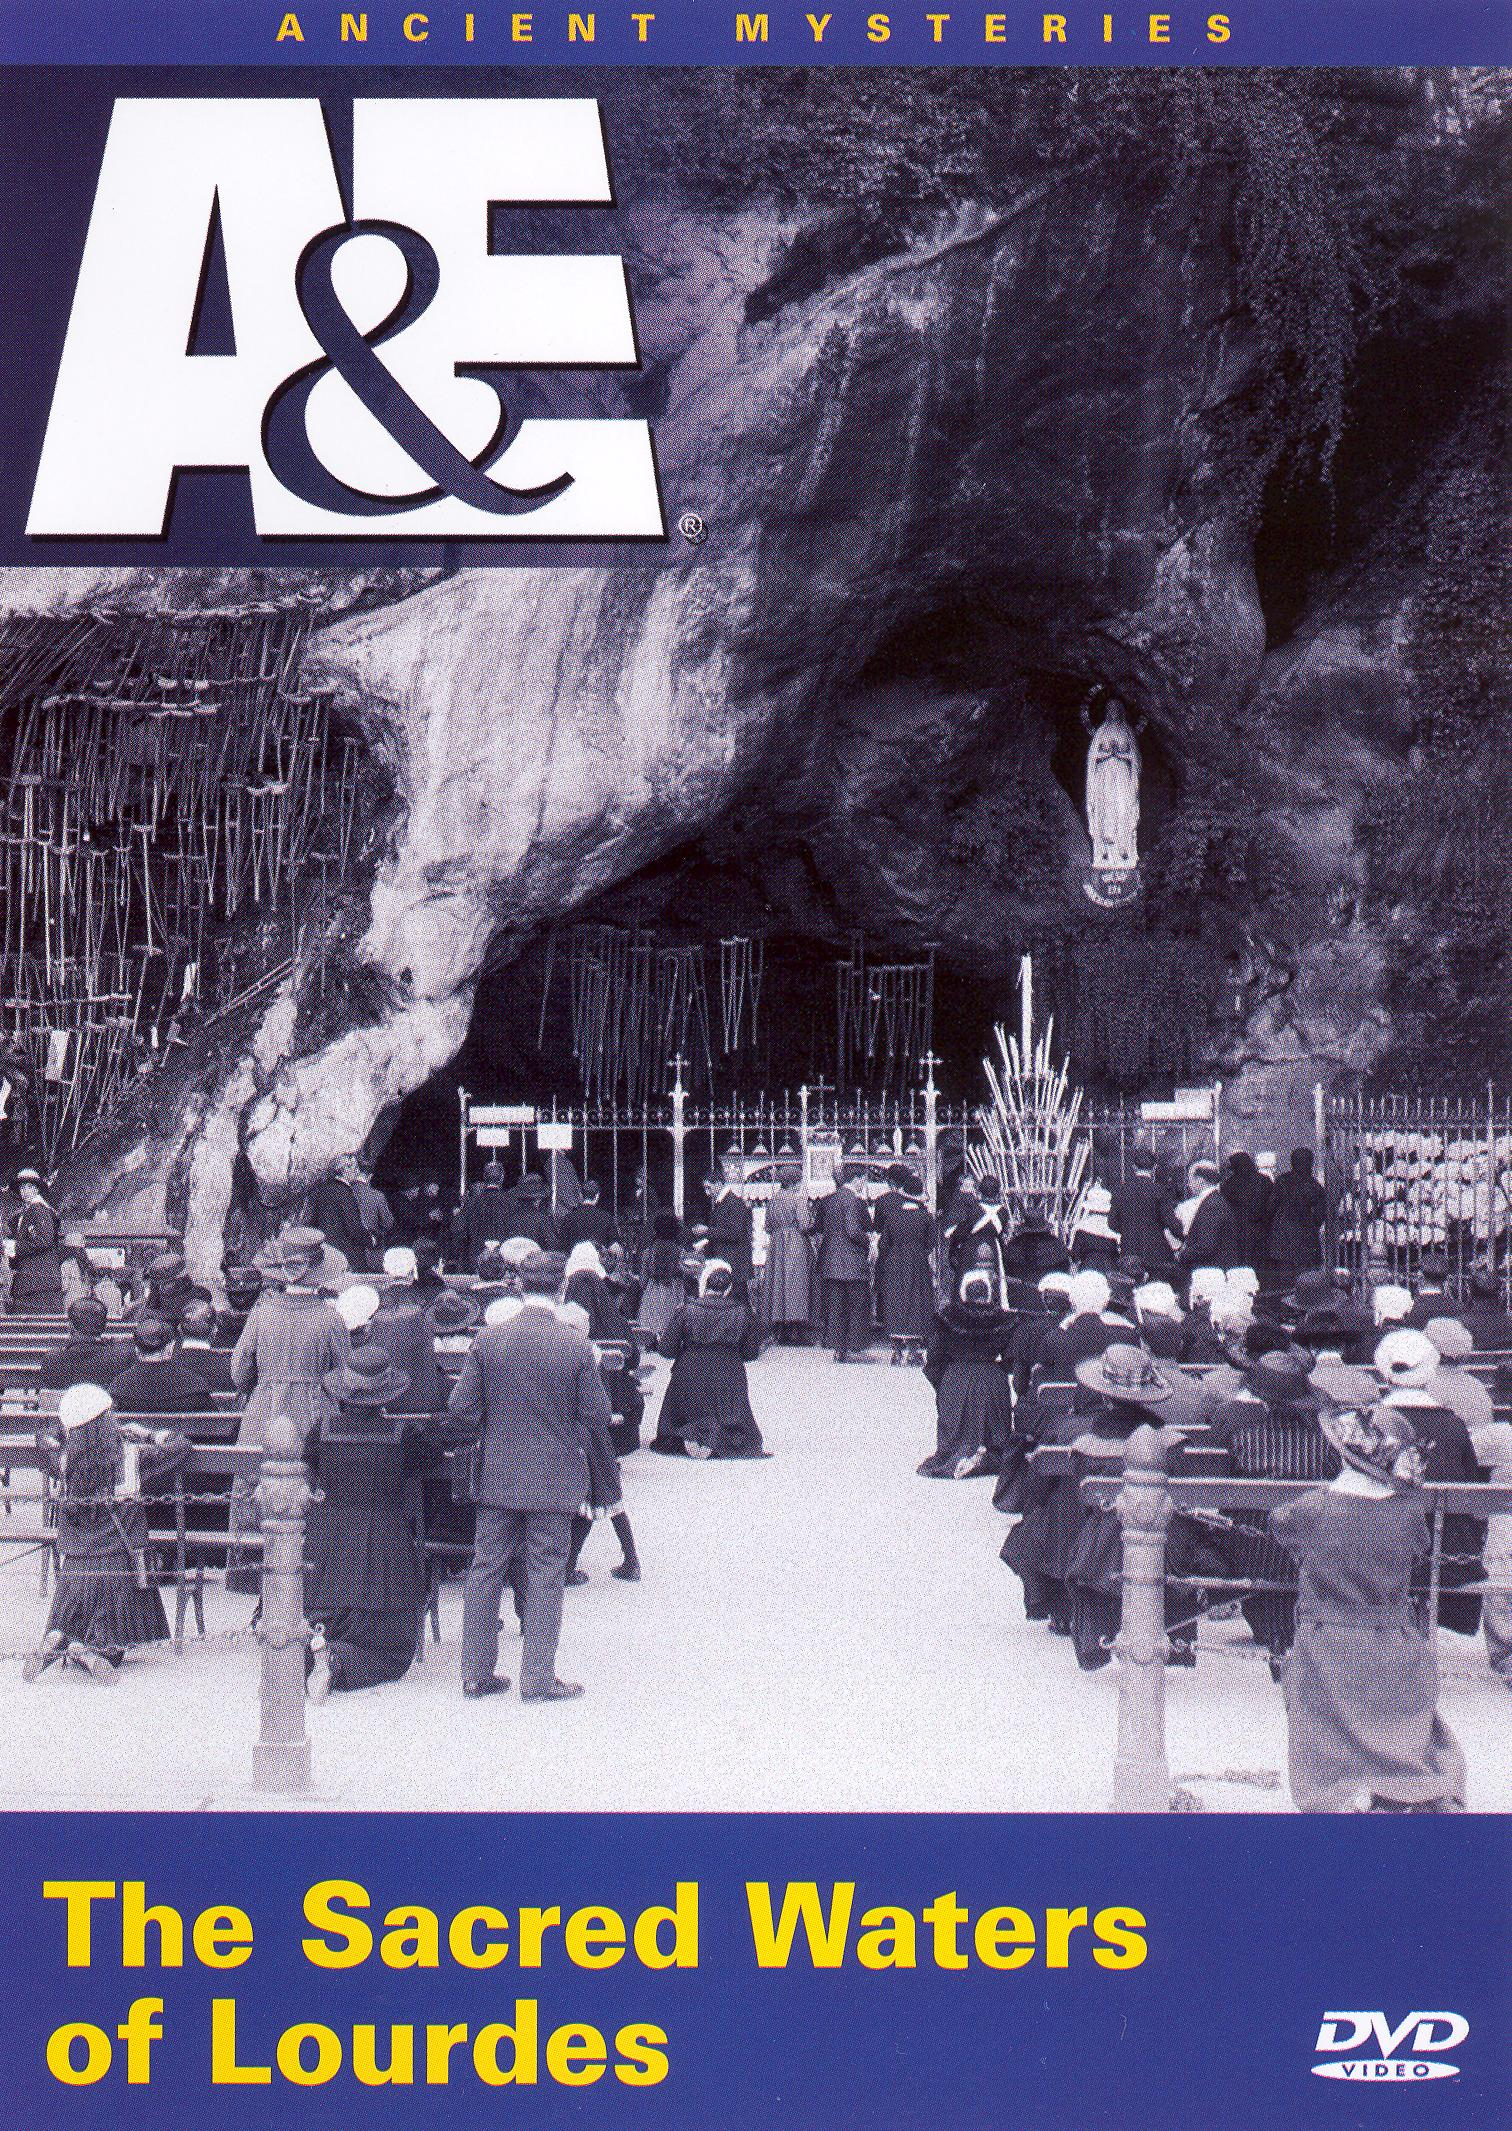 Ancient Mysteries: The Sacred Waters of Lourdes